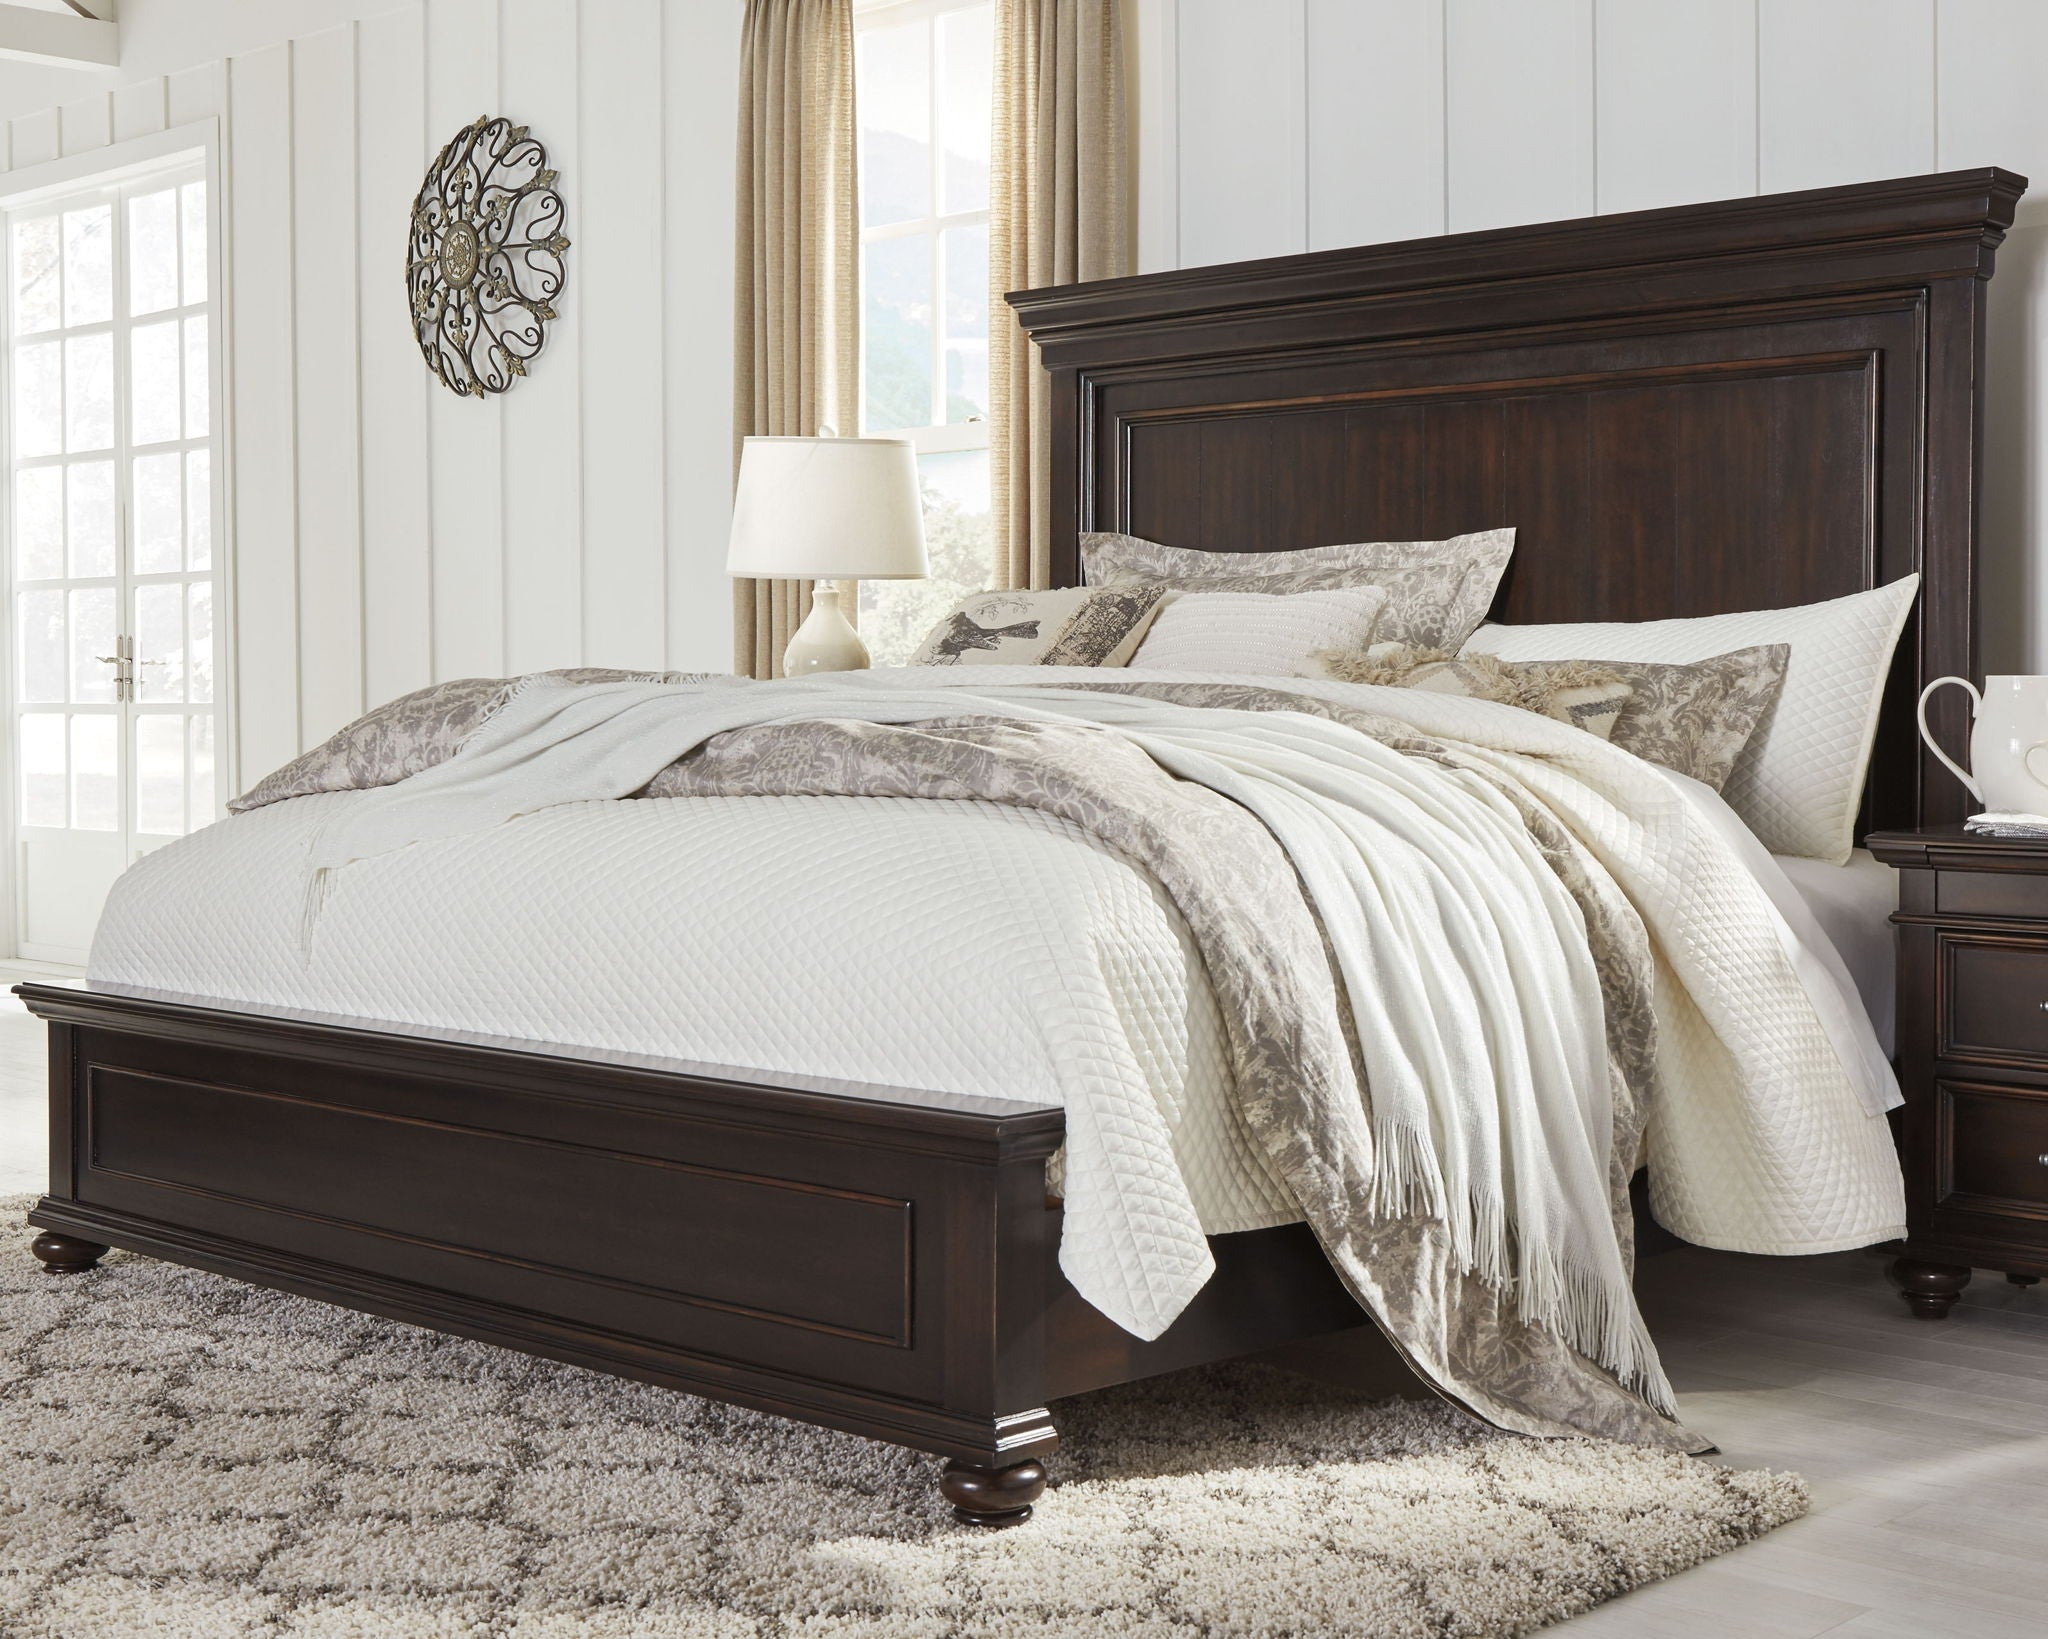 Brynhurst Panel Bed | Calgary's Furniture Store